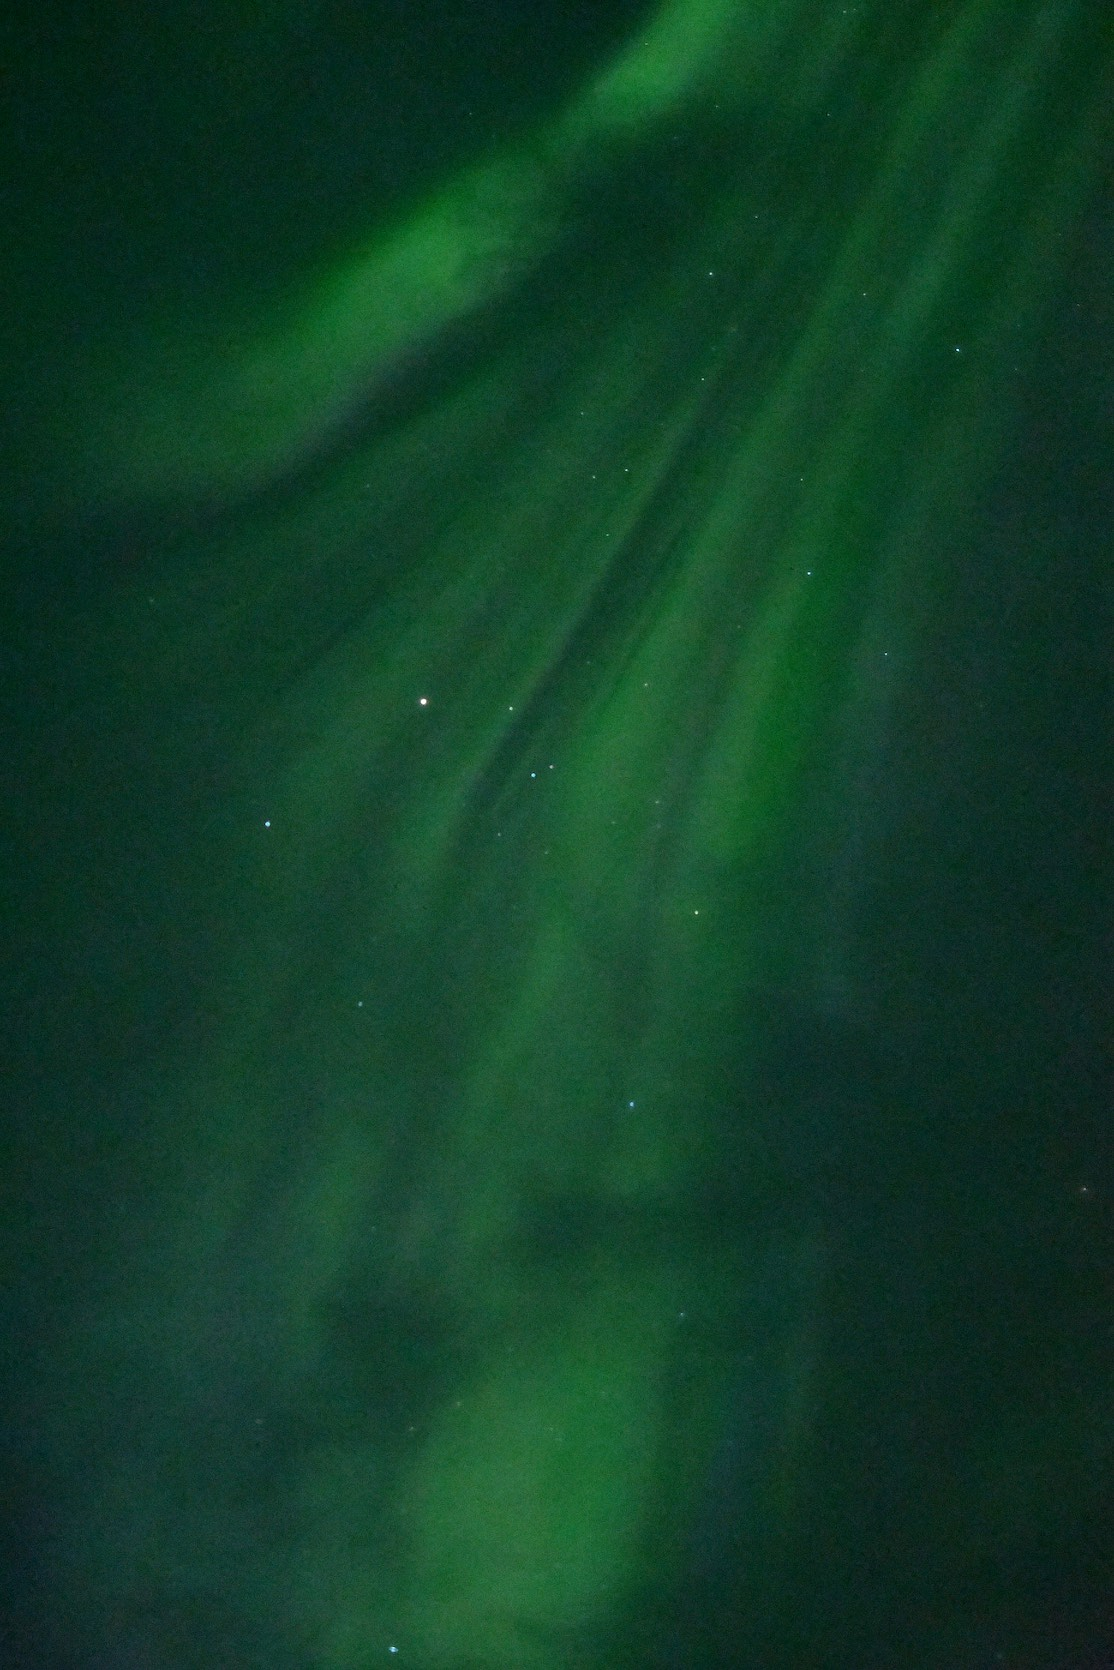 51 200 ISO. Hand-held photo of the northern lights. Amazing.